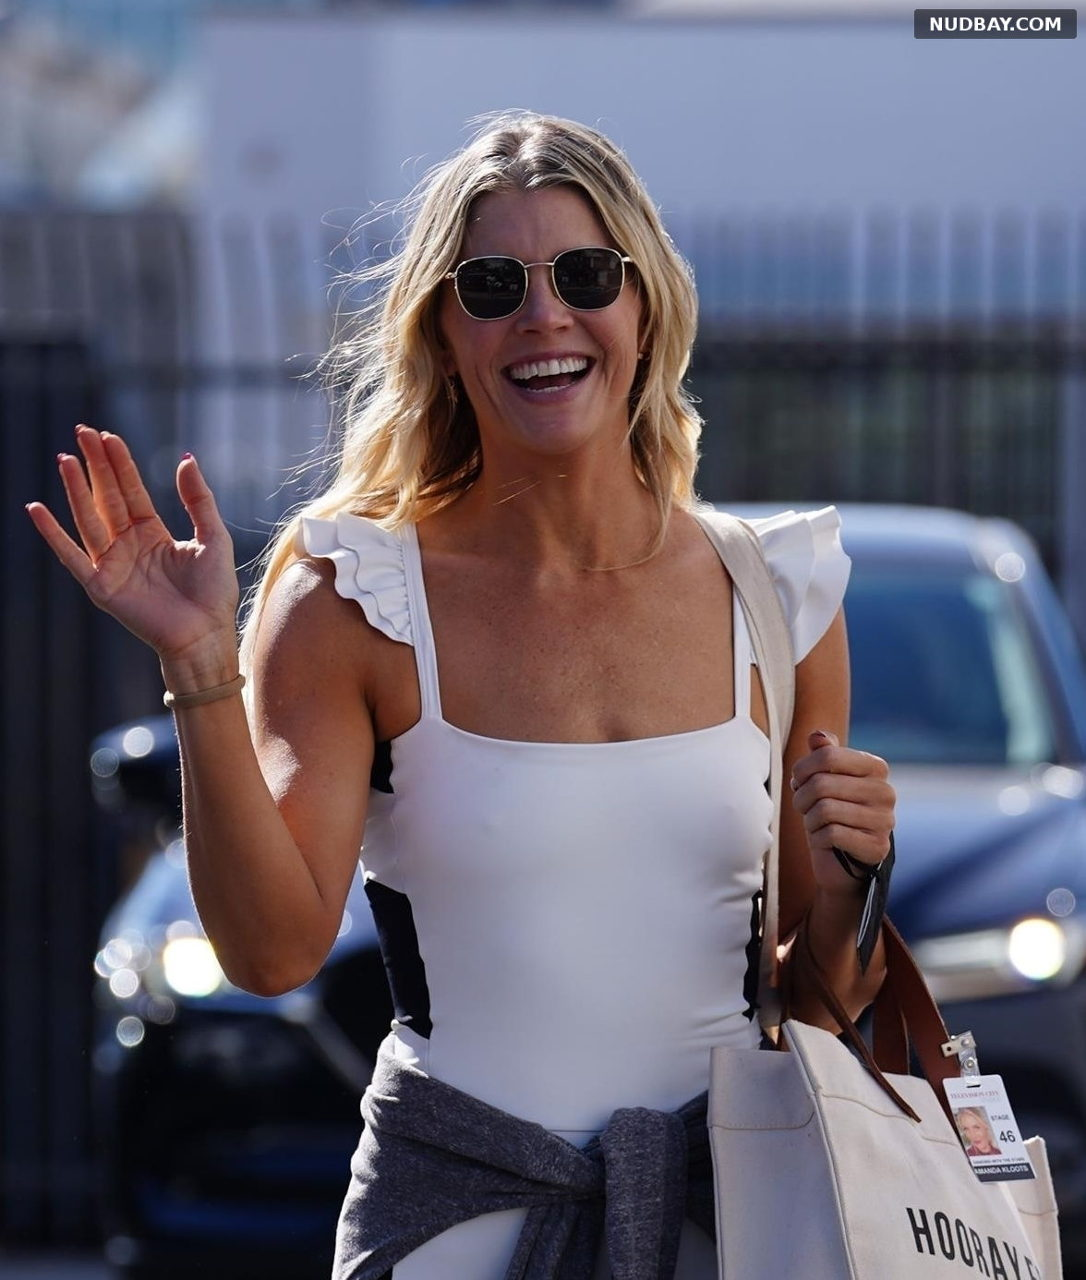 Amanda Kloots Pokies goes at the Dancing With The Stars rehearsal studio in Los Angeles Sep 21 2021